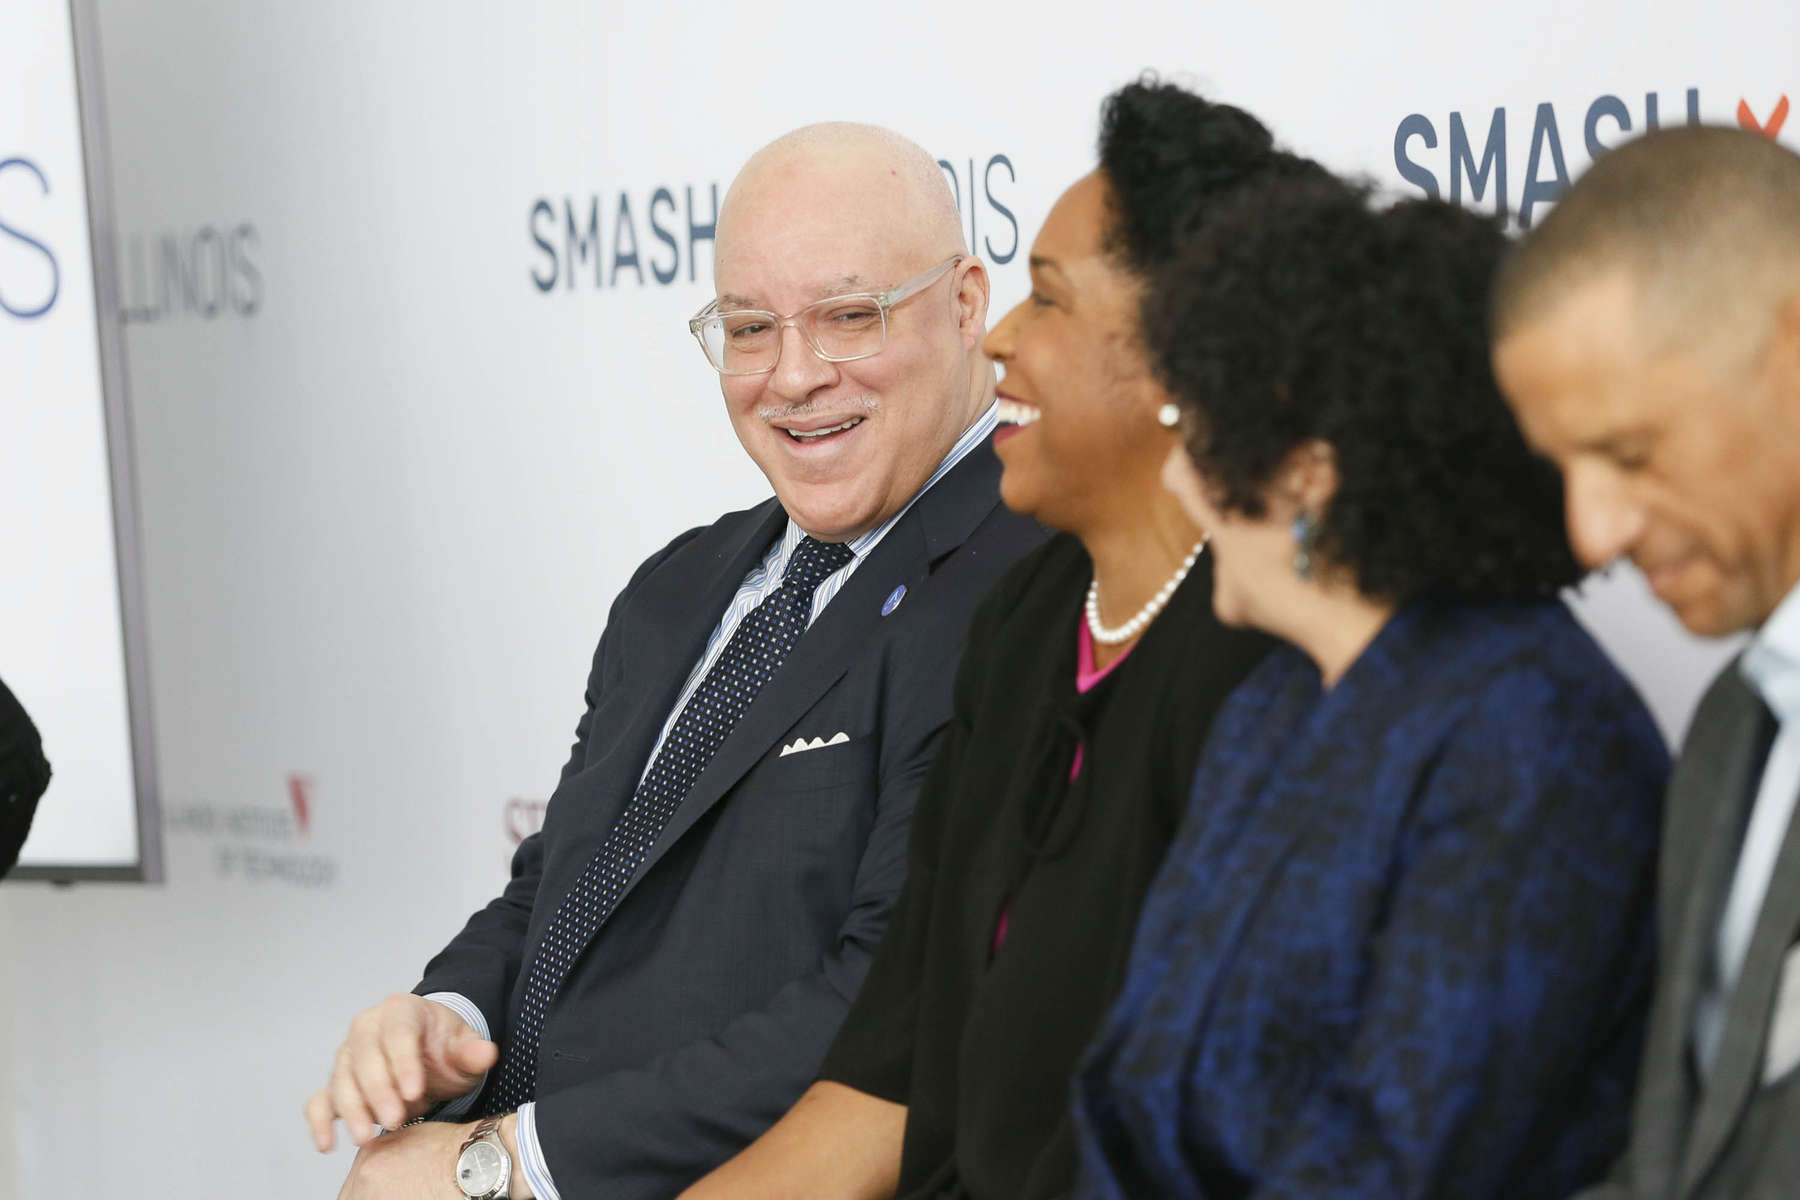 Left to Right: Dr. Eric Whitaker (Emcee), Lt. Governor Juliana  and Dr. Freada Kapor Klein at the SMASH Illinois launch in Chicago, Illinois on January 24, 2019.